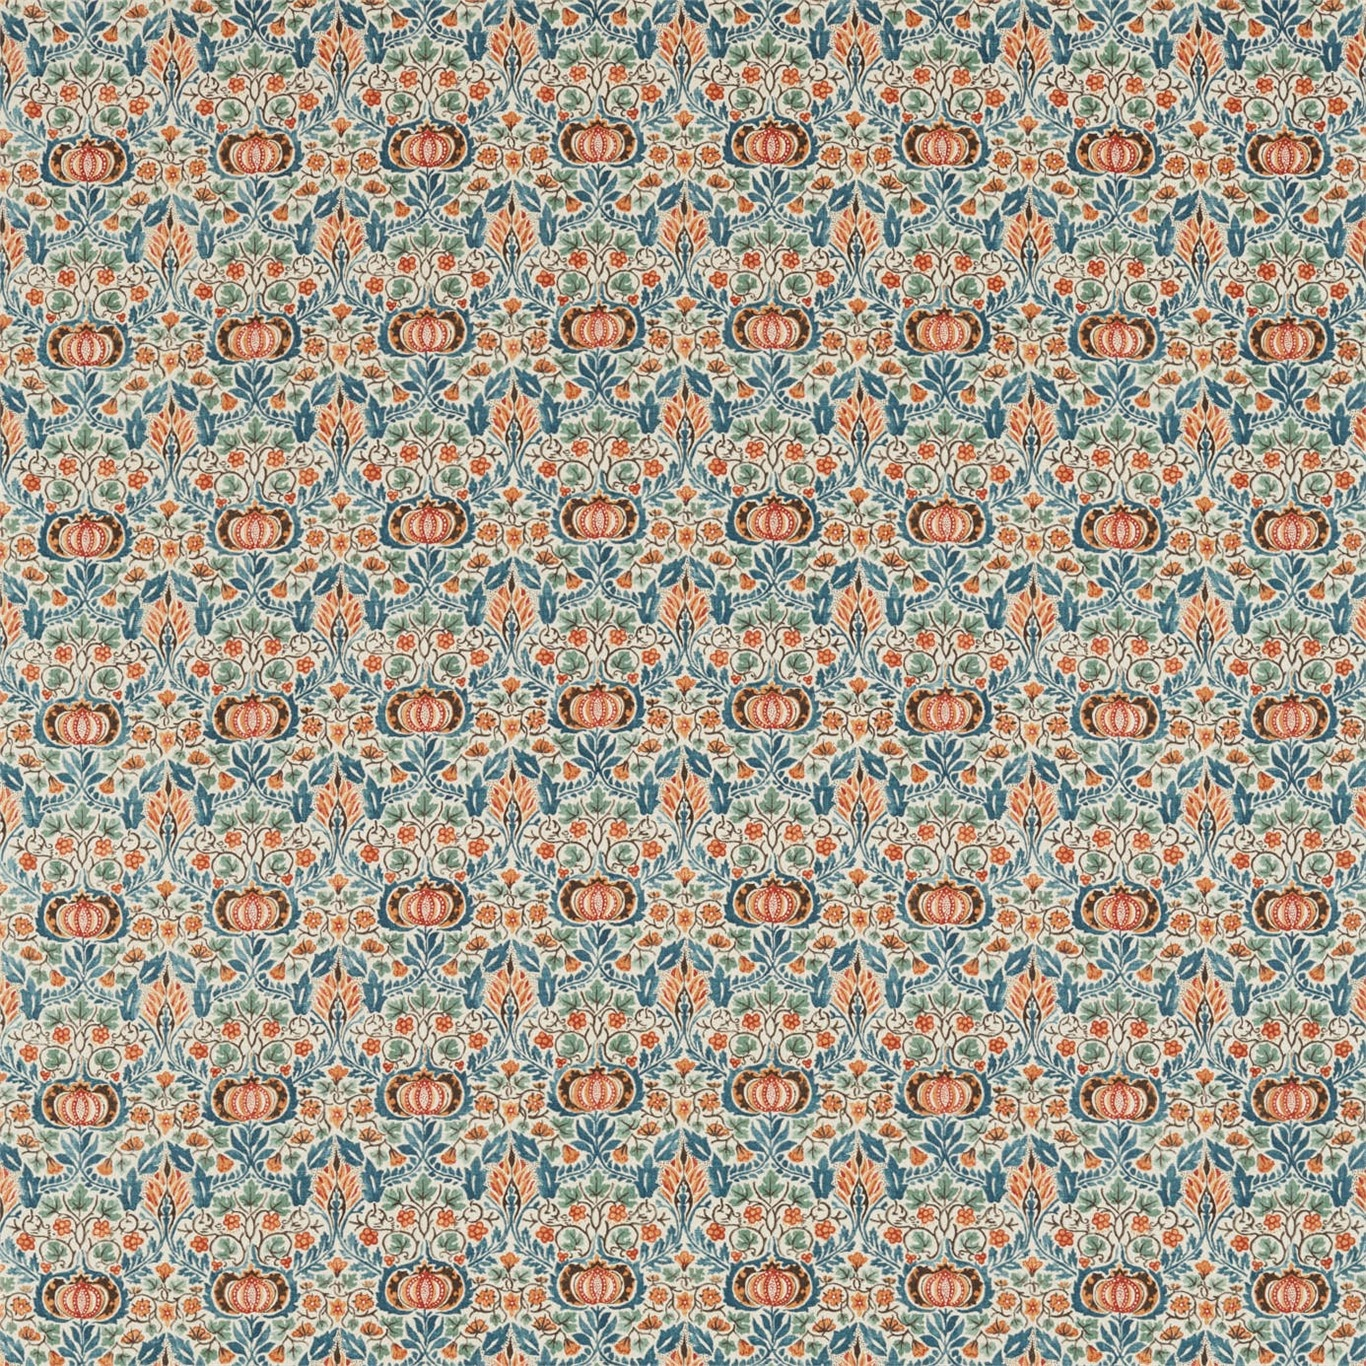 Image of Morris & Co Little Chintz Teal/Saffron Fabric 226409